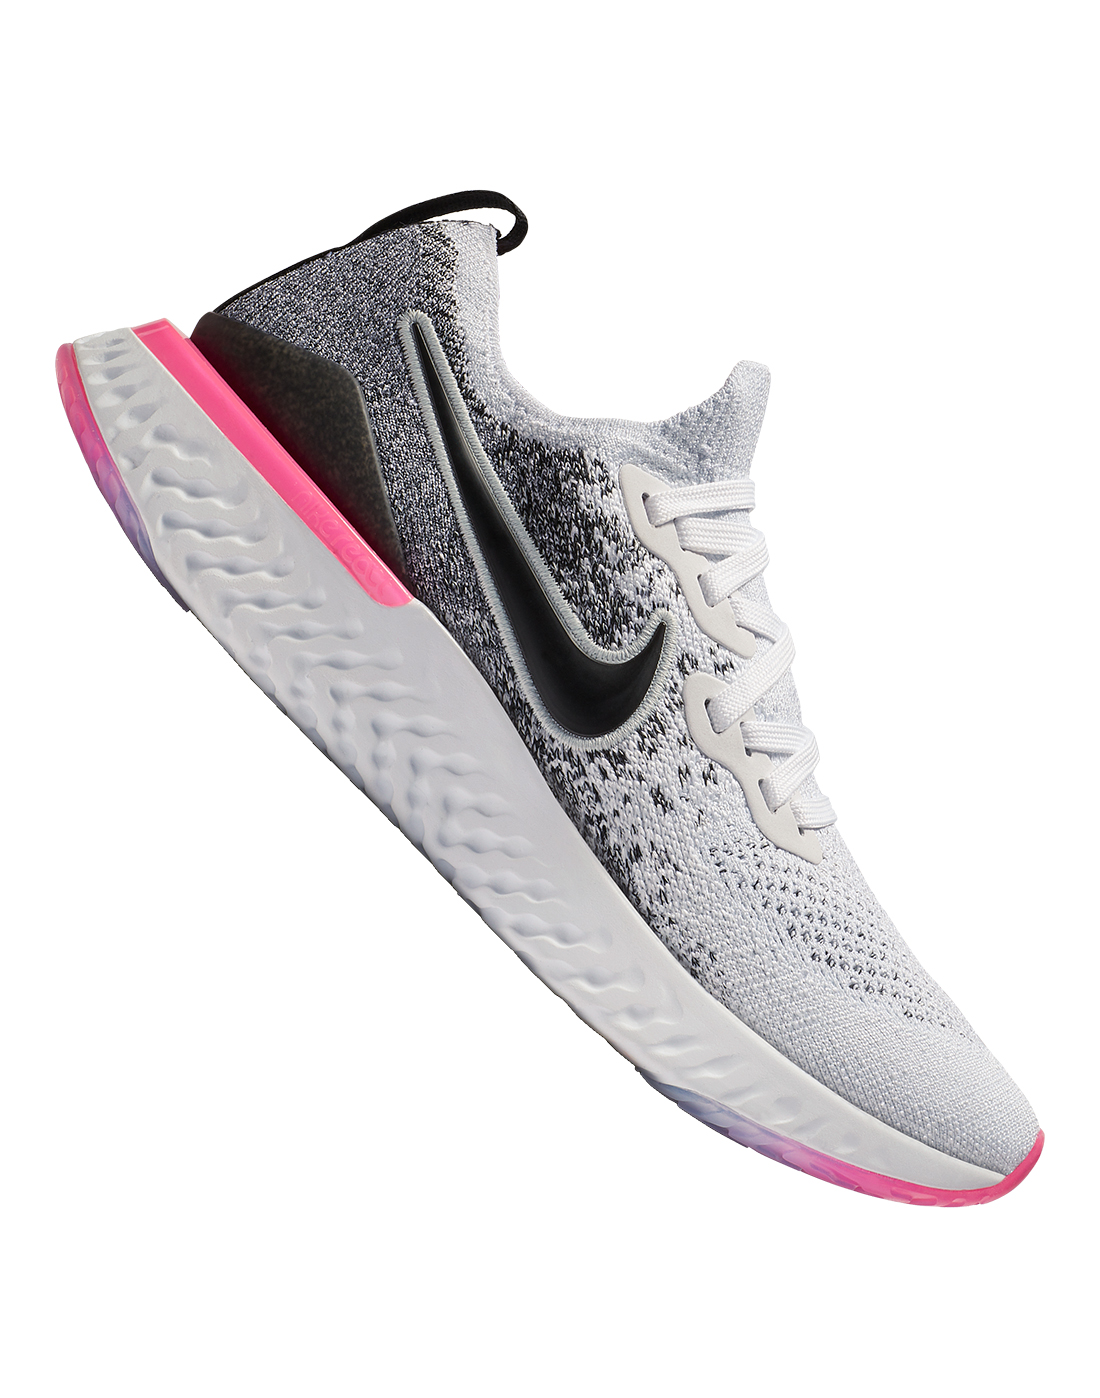 on sale 2637d 1770a Womens Epic React Flyknit 2